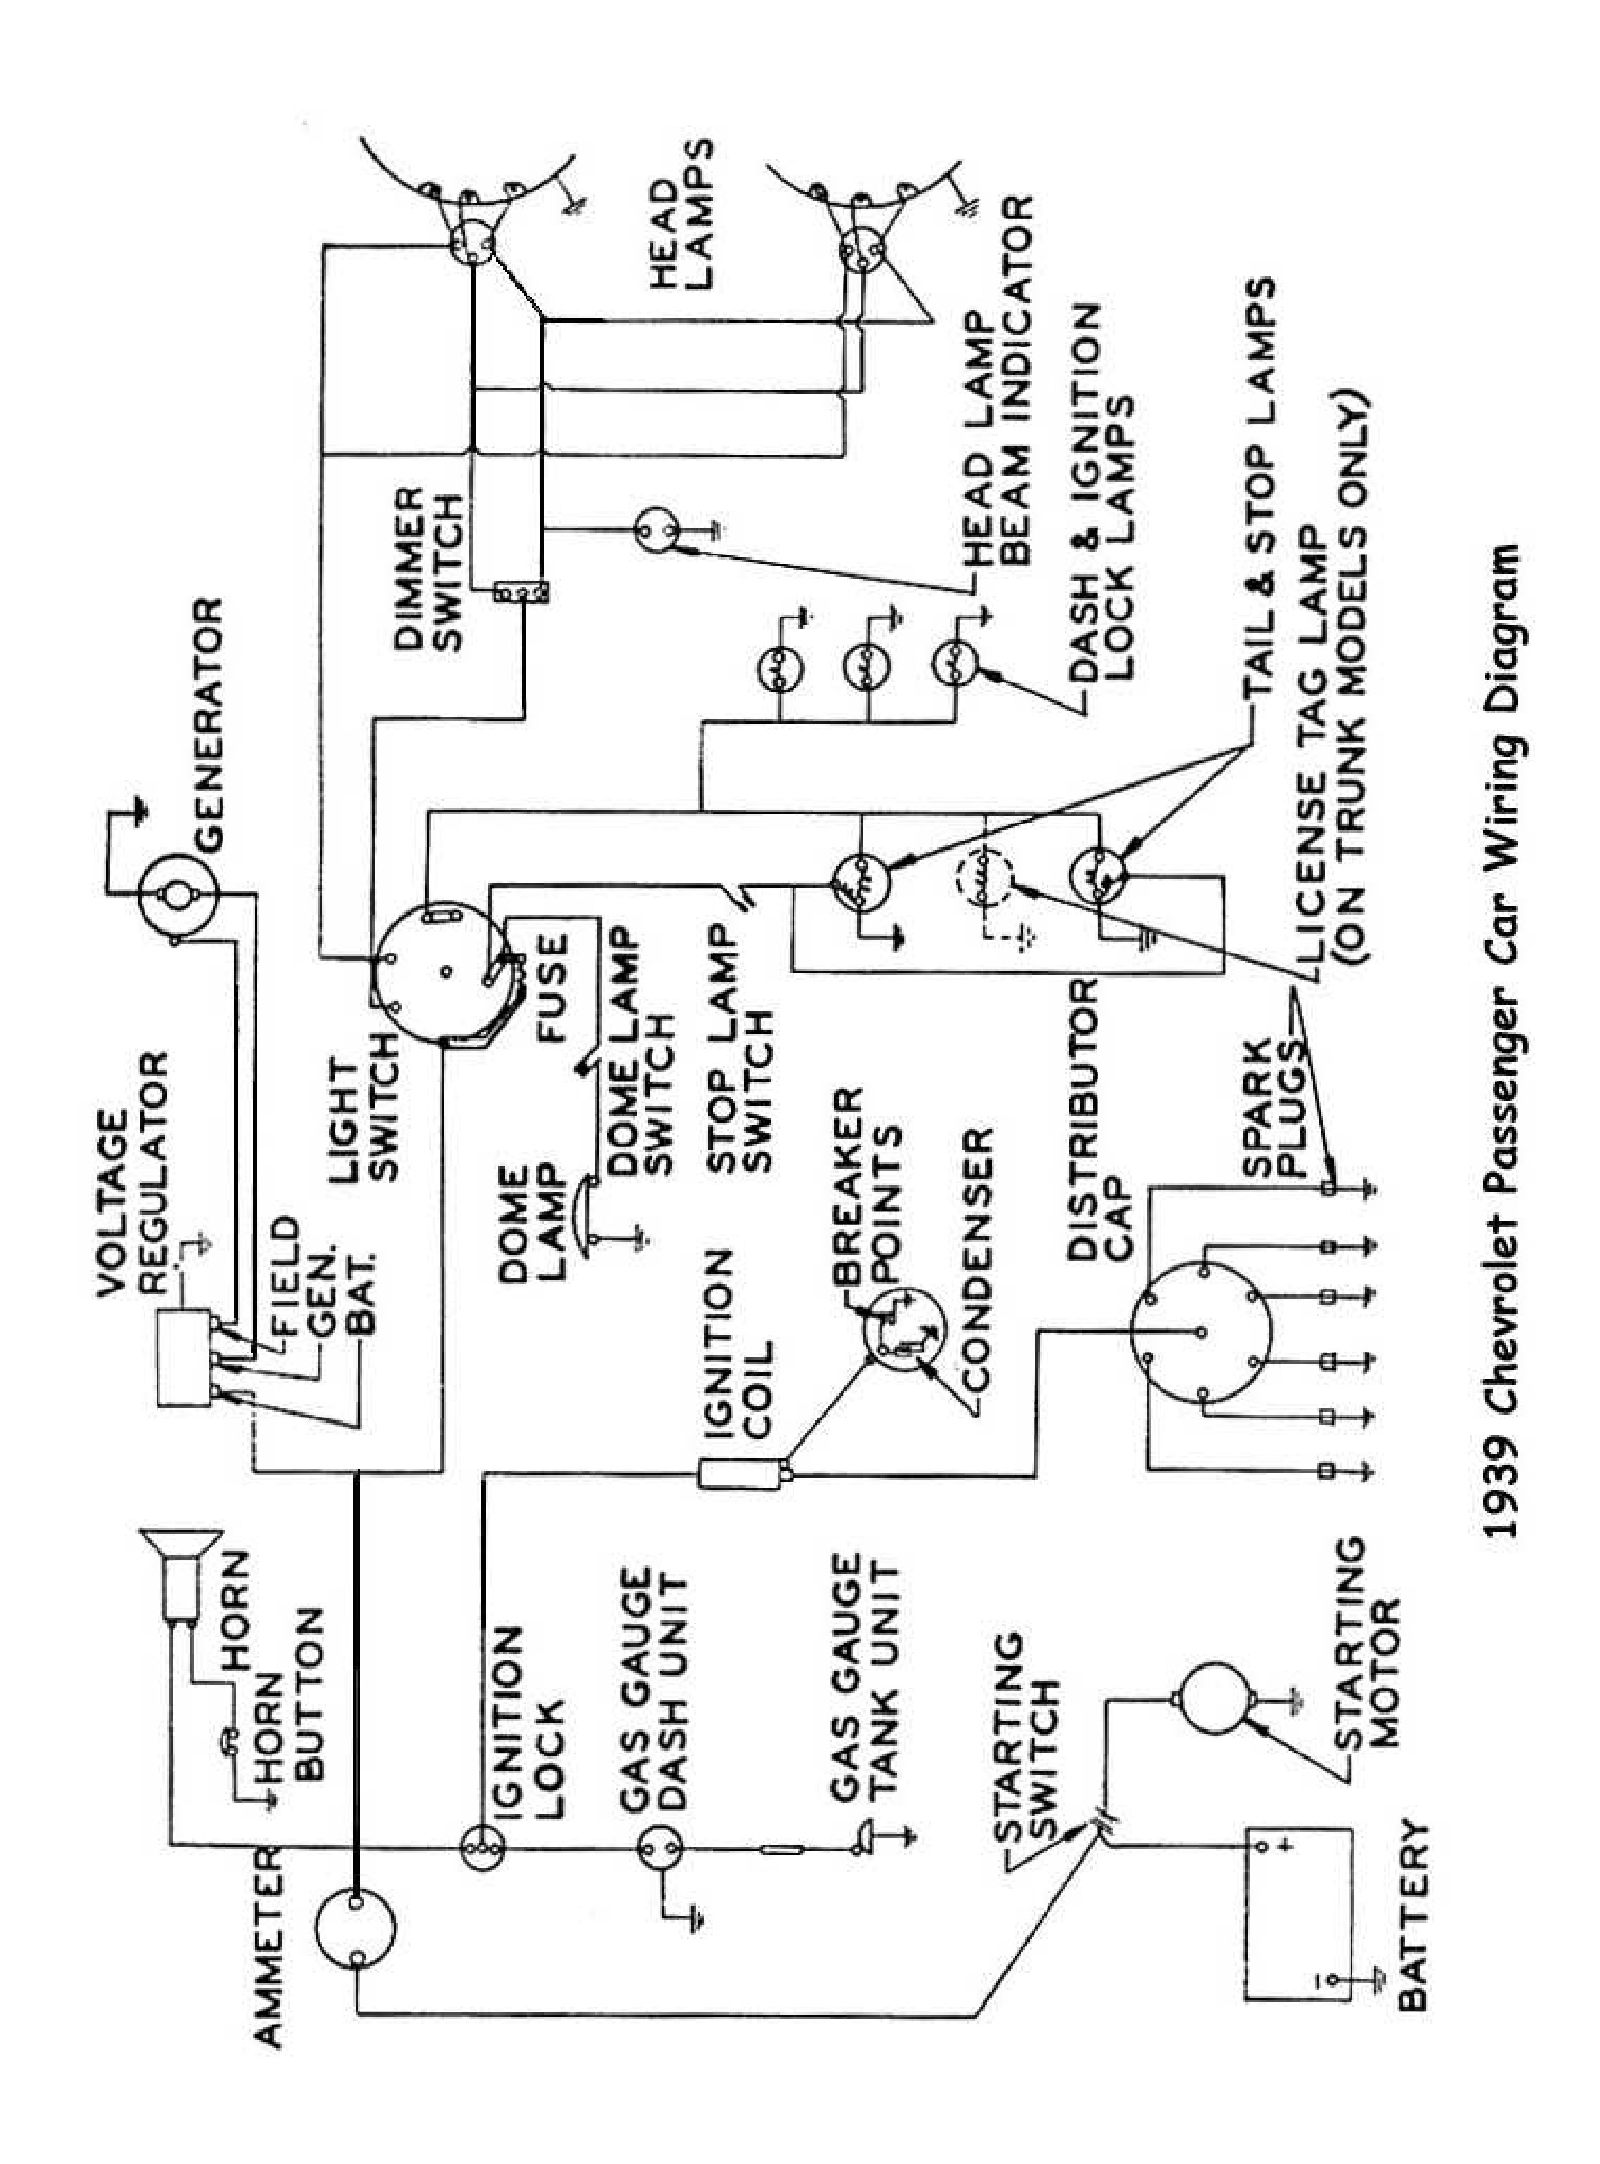 hight resolution of diy basic auto wiring simple wiring schema home electrical system diagram basic auto electrical diagram